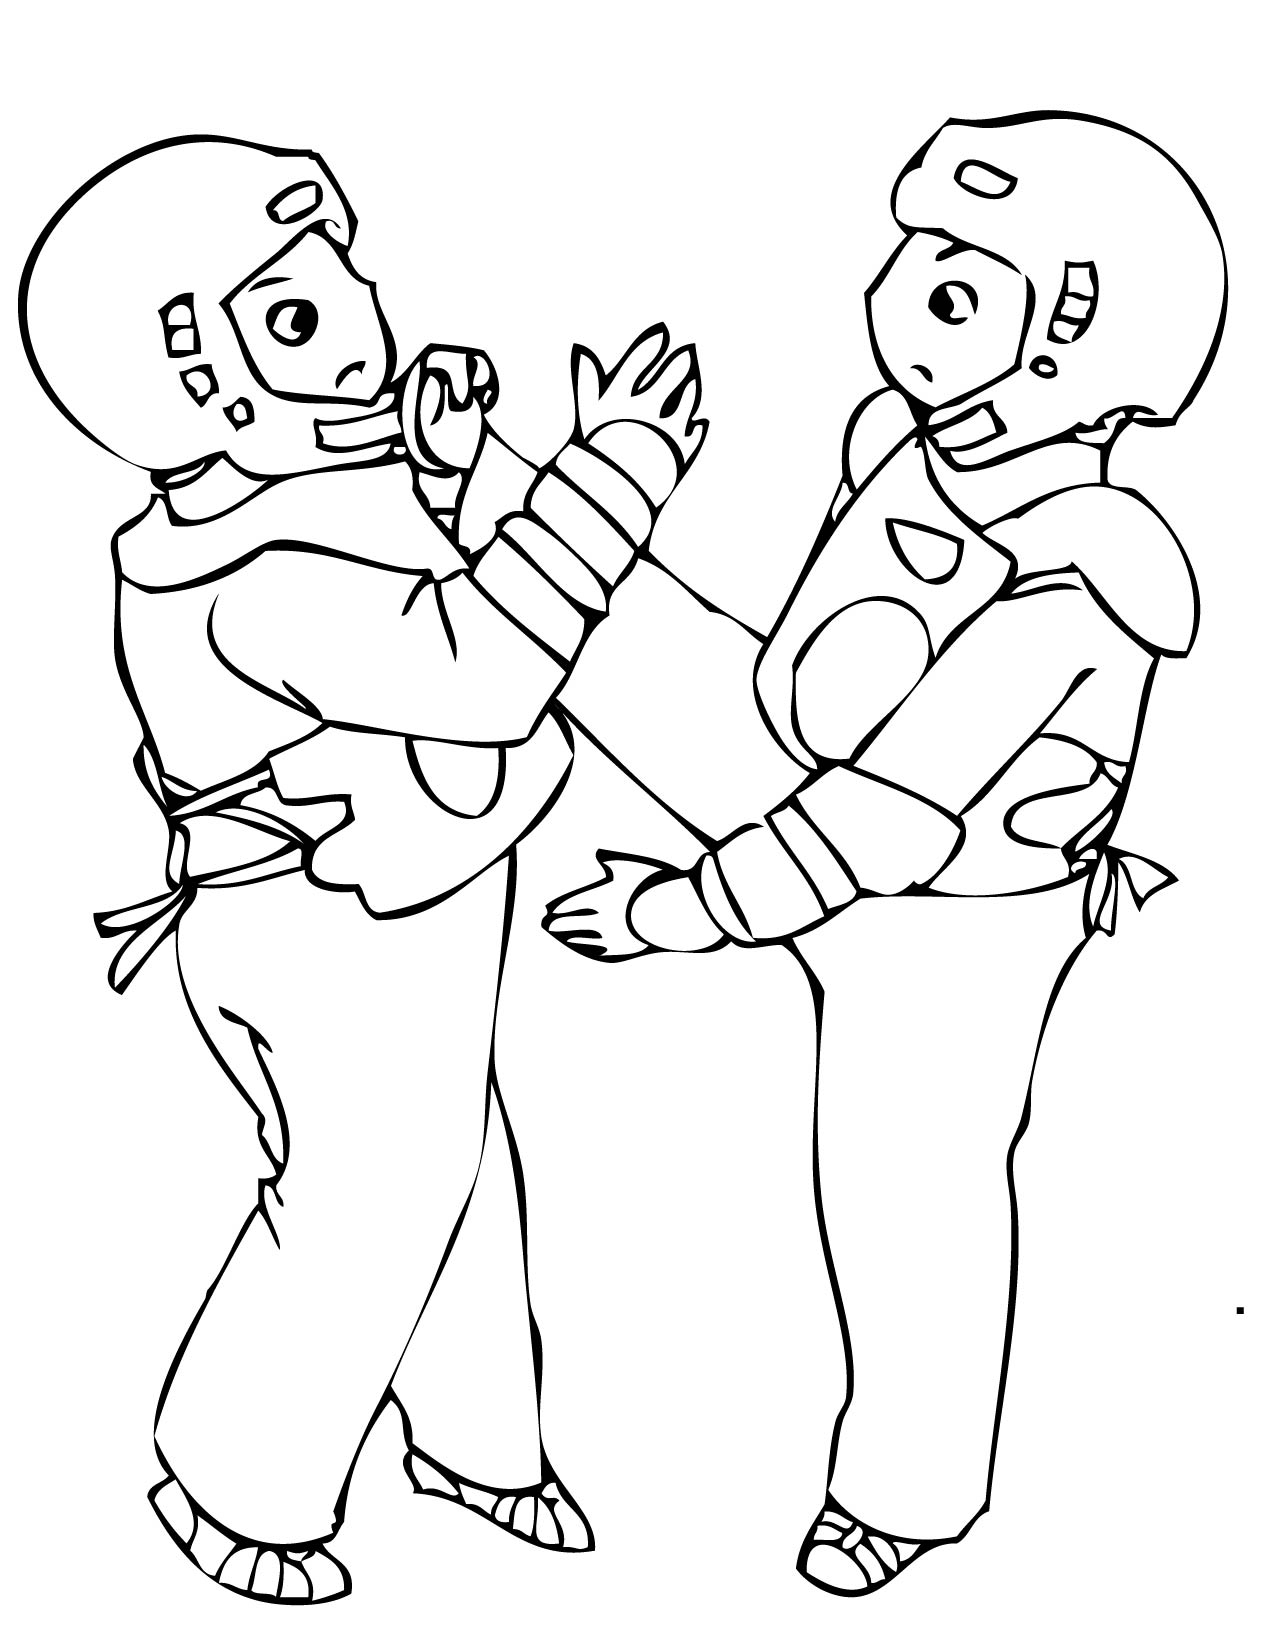 Martial Arts Free Coloring Pages